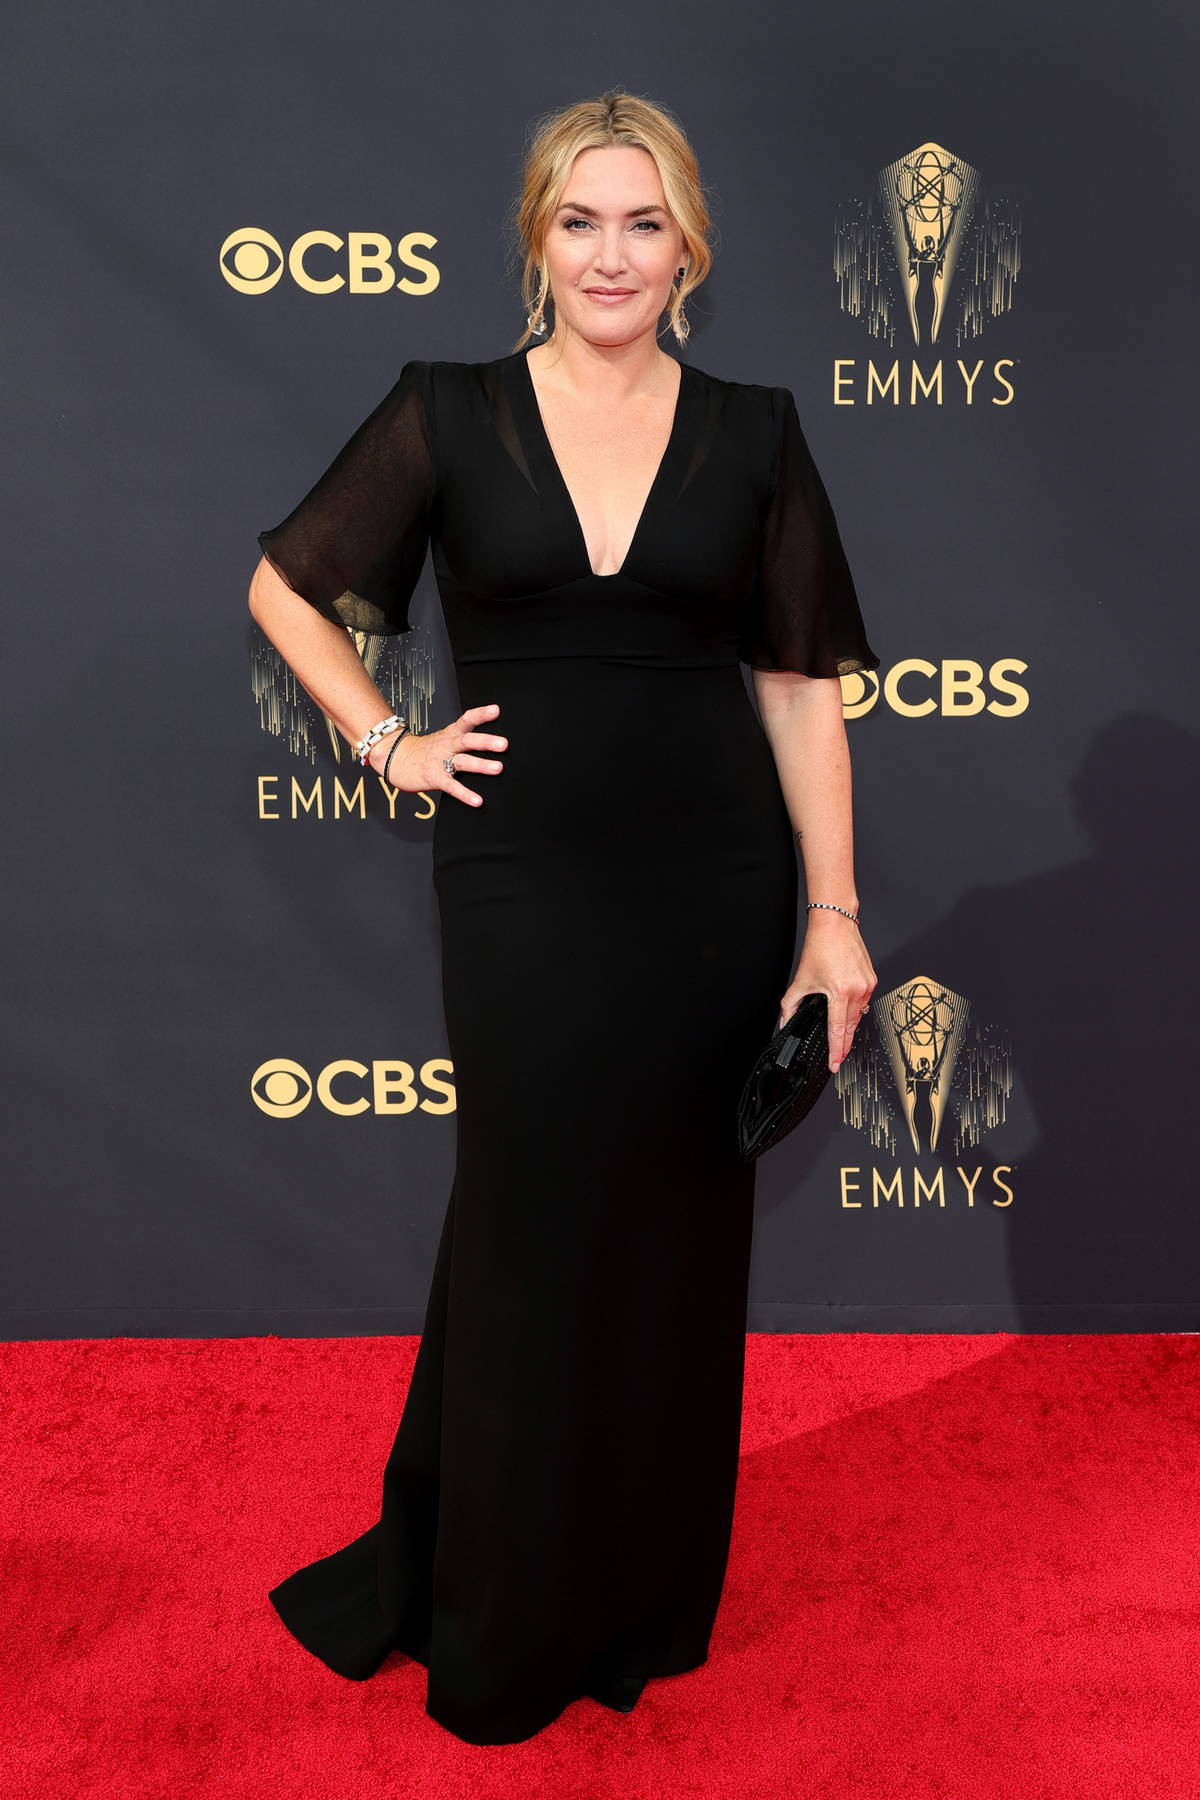 Kate Winslet attends attends the 73rd Primetime Emmy Awards at L.A. Live in Los Angeles